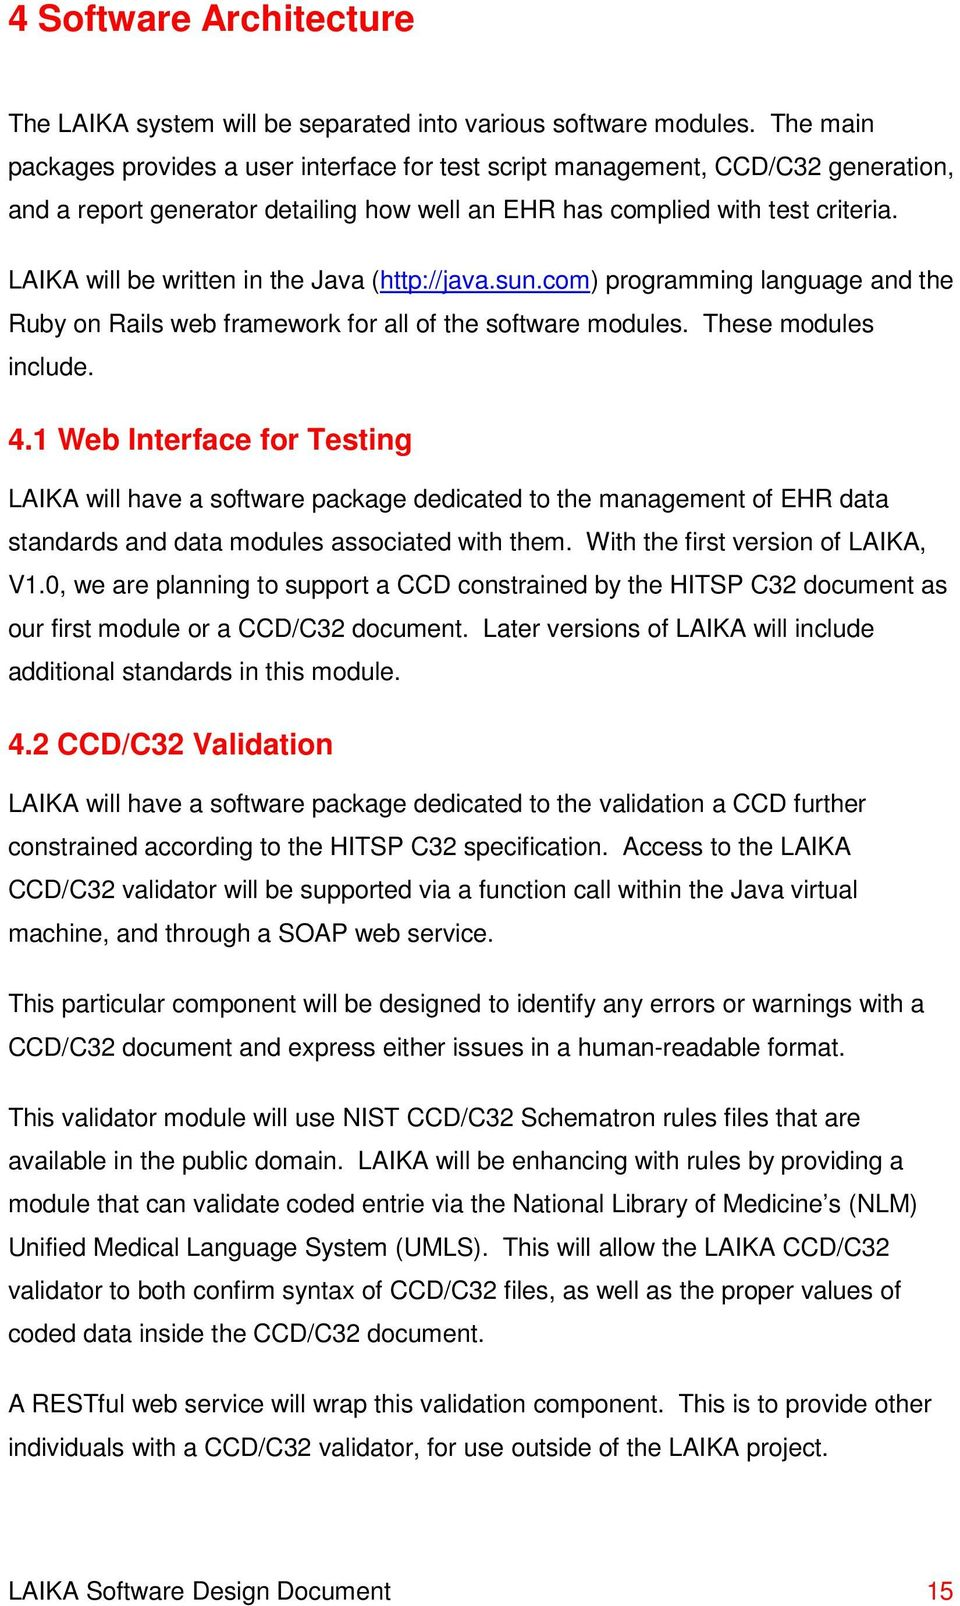 LAIKA will be written in the Java (http://java.sun.com) programming language and the Ruby on Rails web framework for all of the software modules. These modules include. 4.